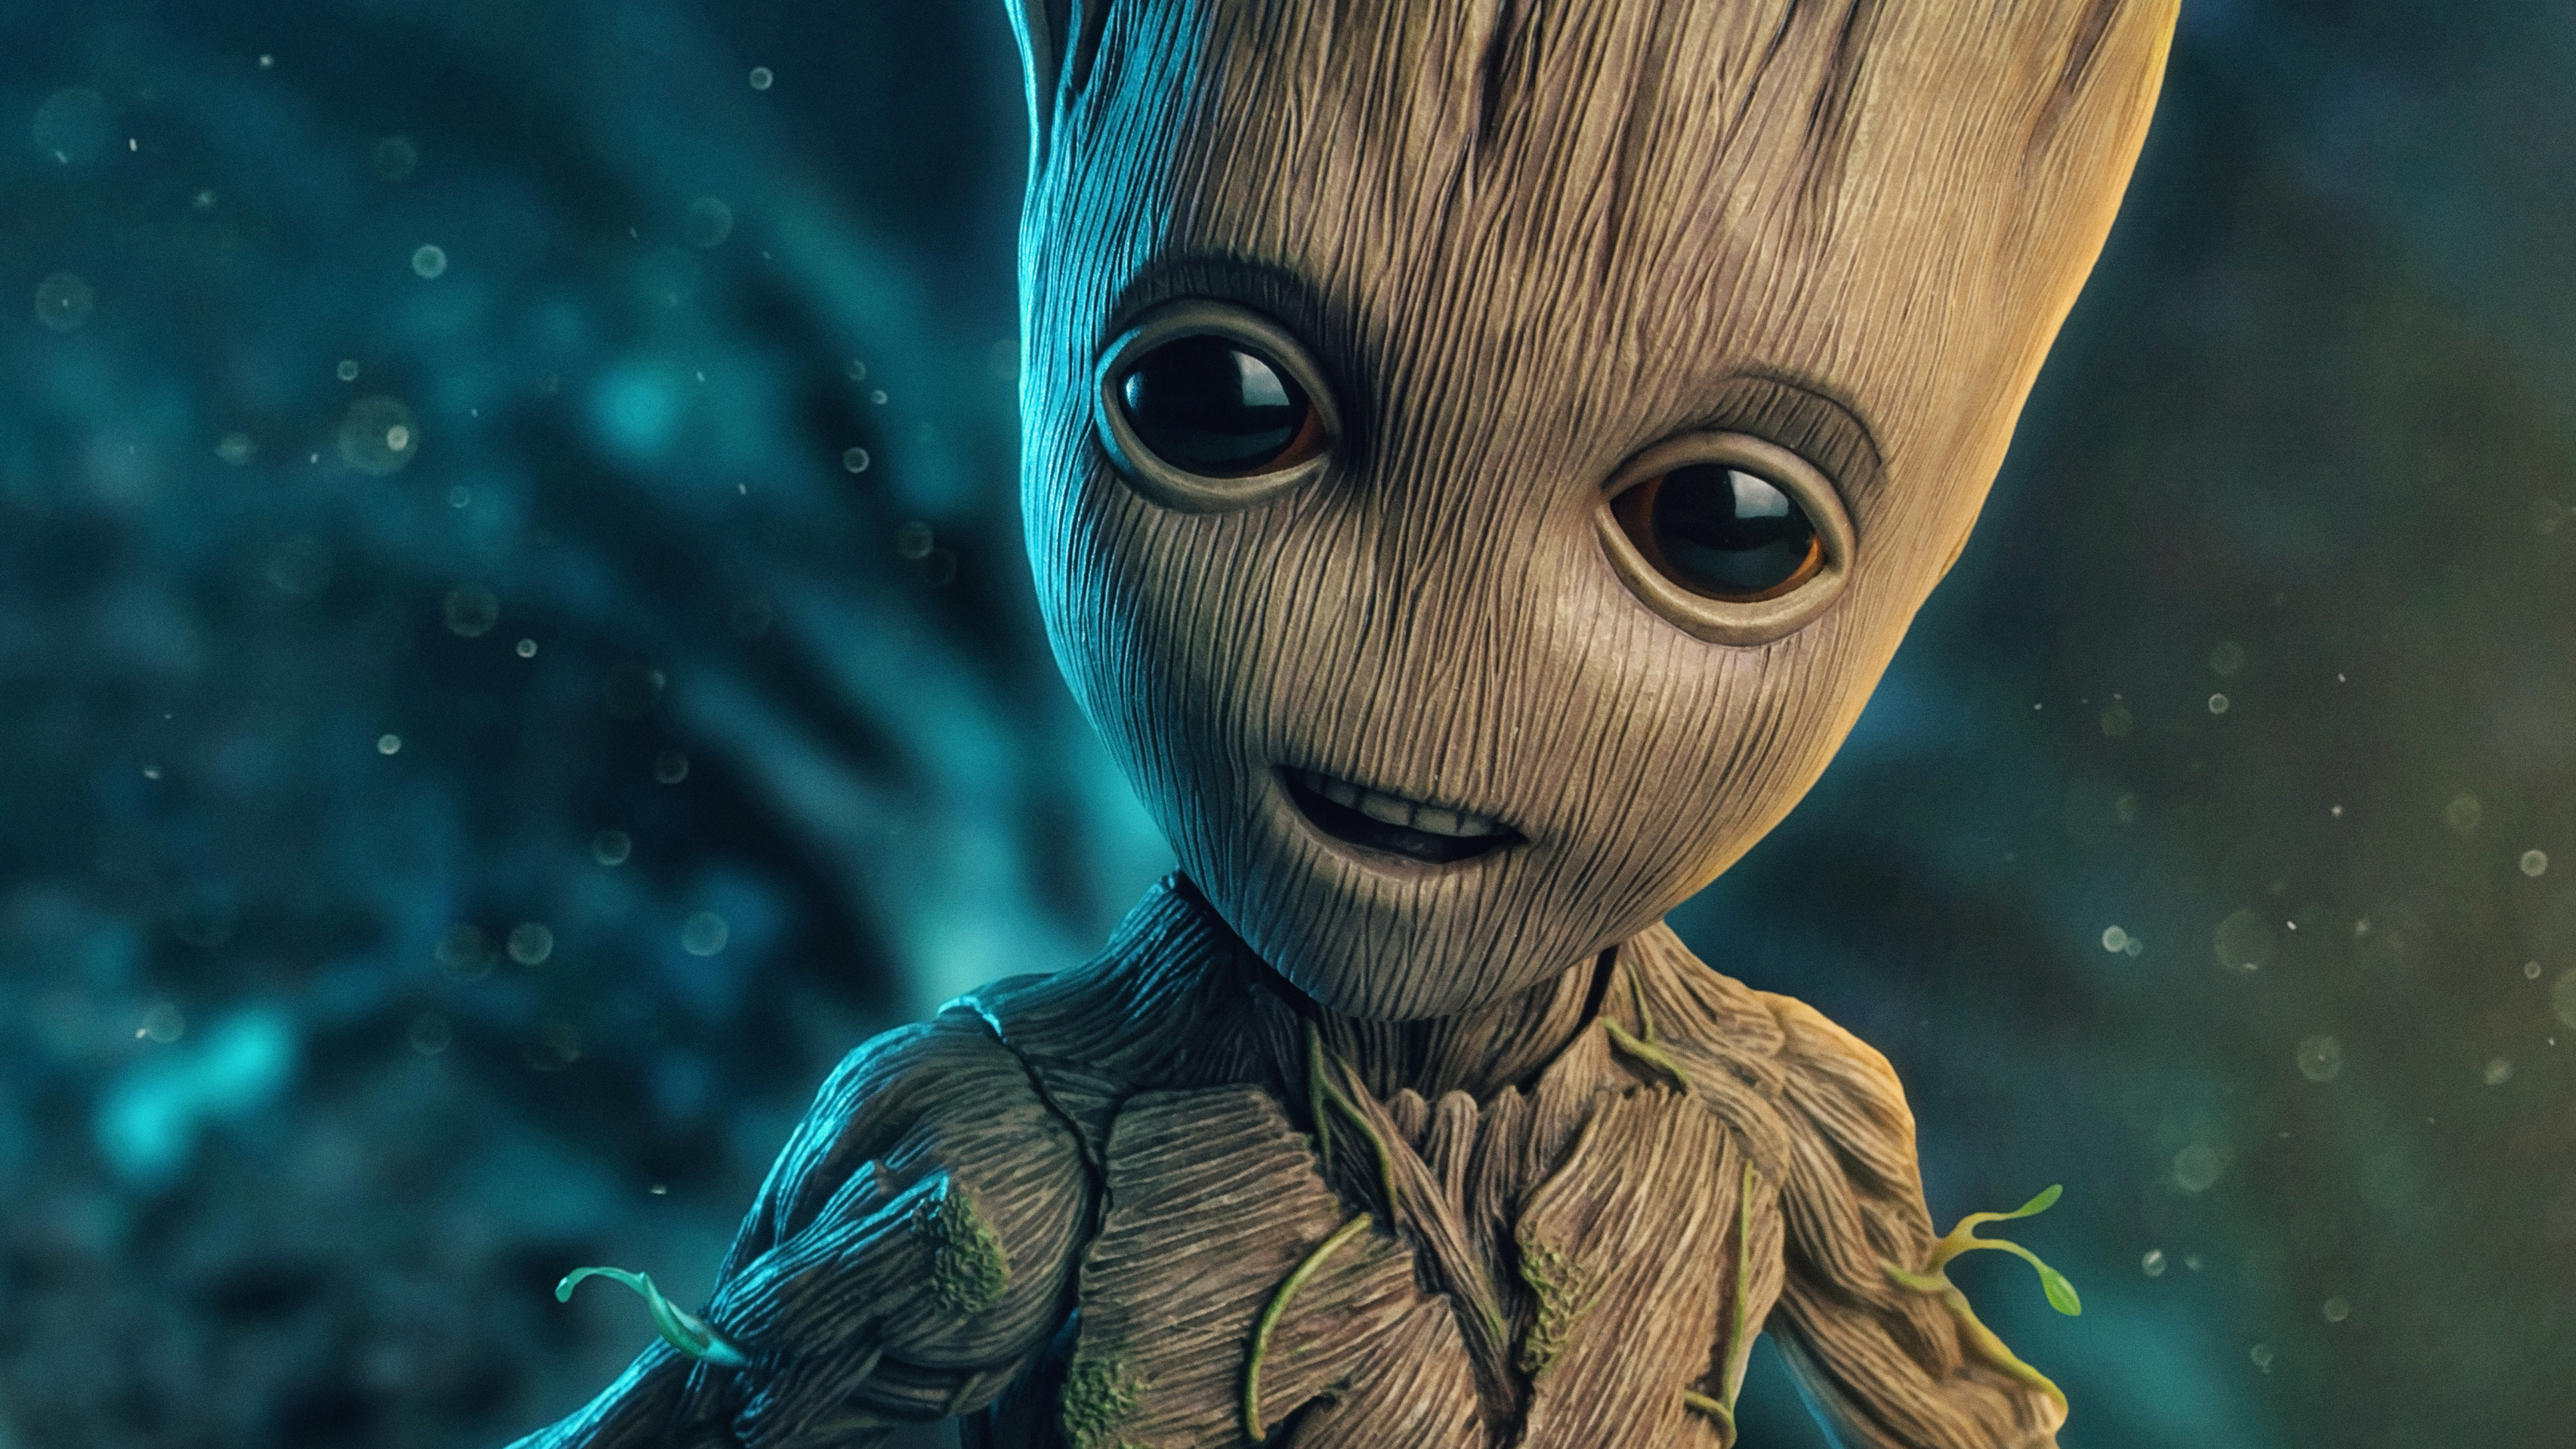 4K Groot Wallpapers High Quality | Download Free